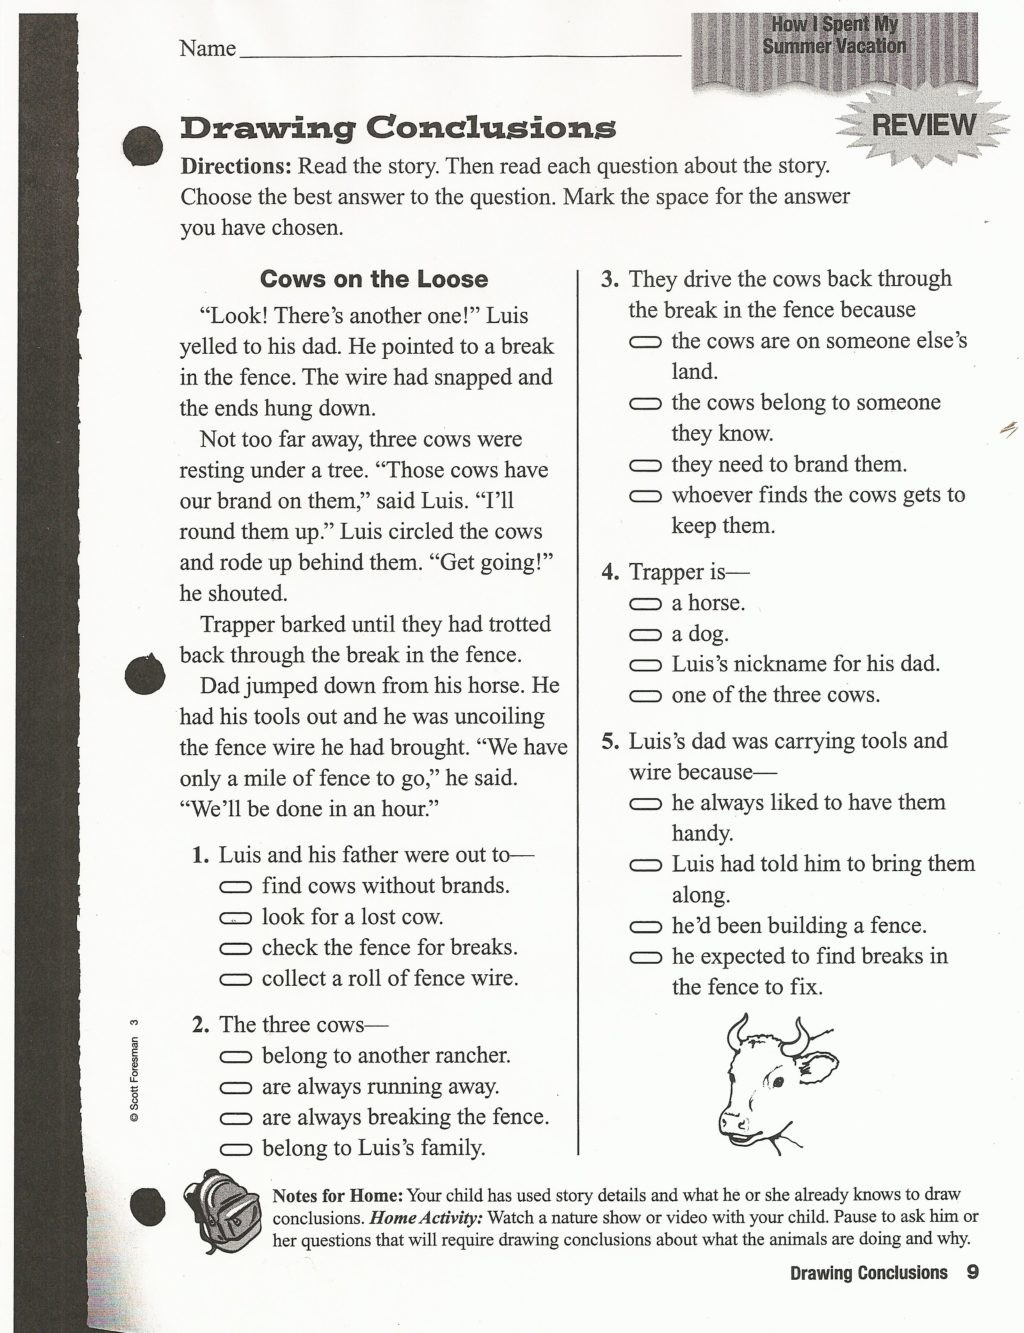 Drawing Conclusions Worksheets 4th Grade Worksheet Outstanding Third Grade Reading Worksheets